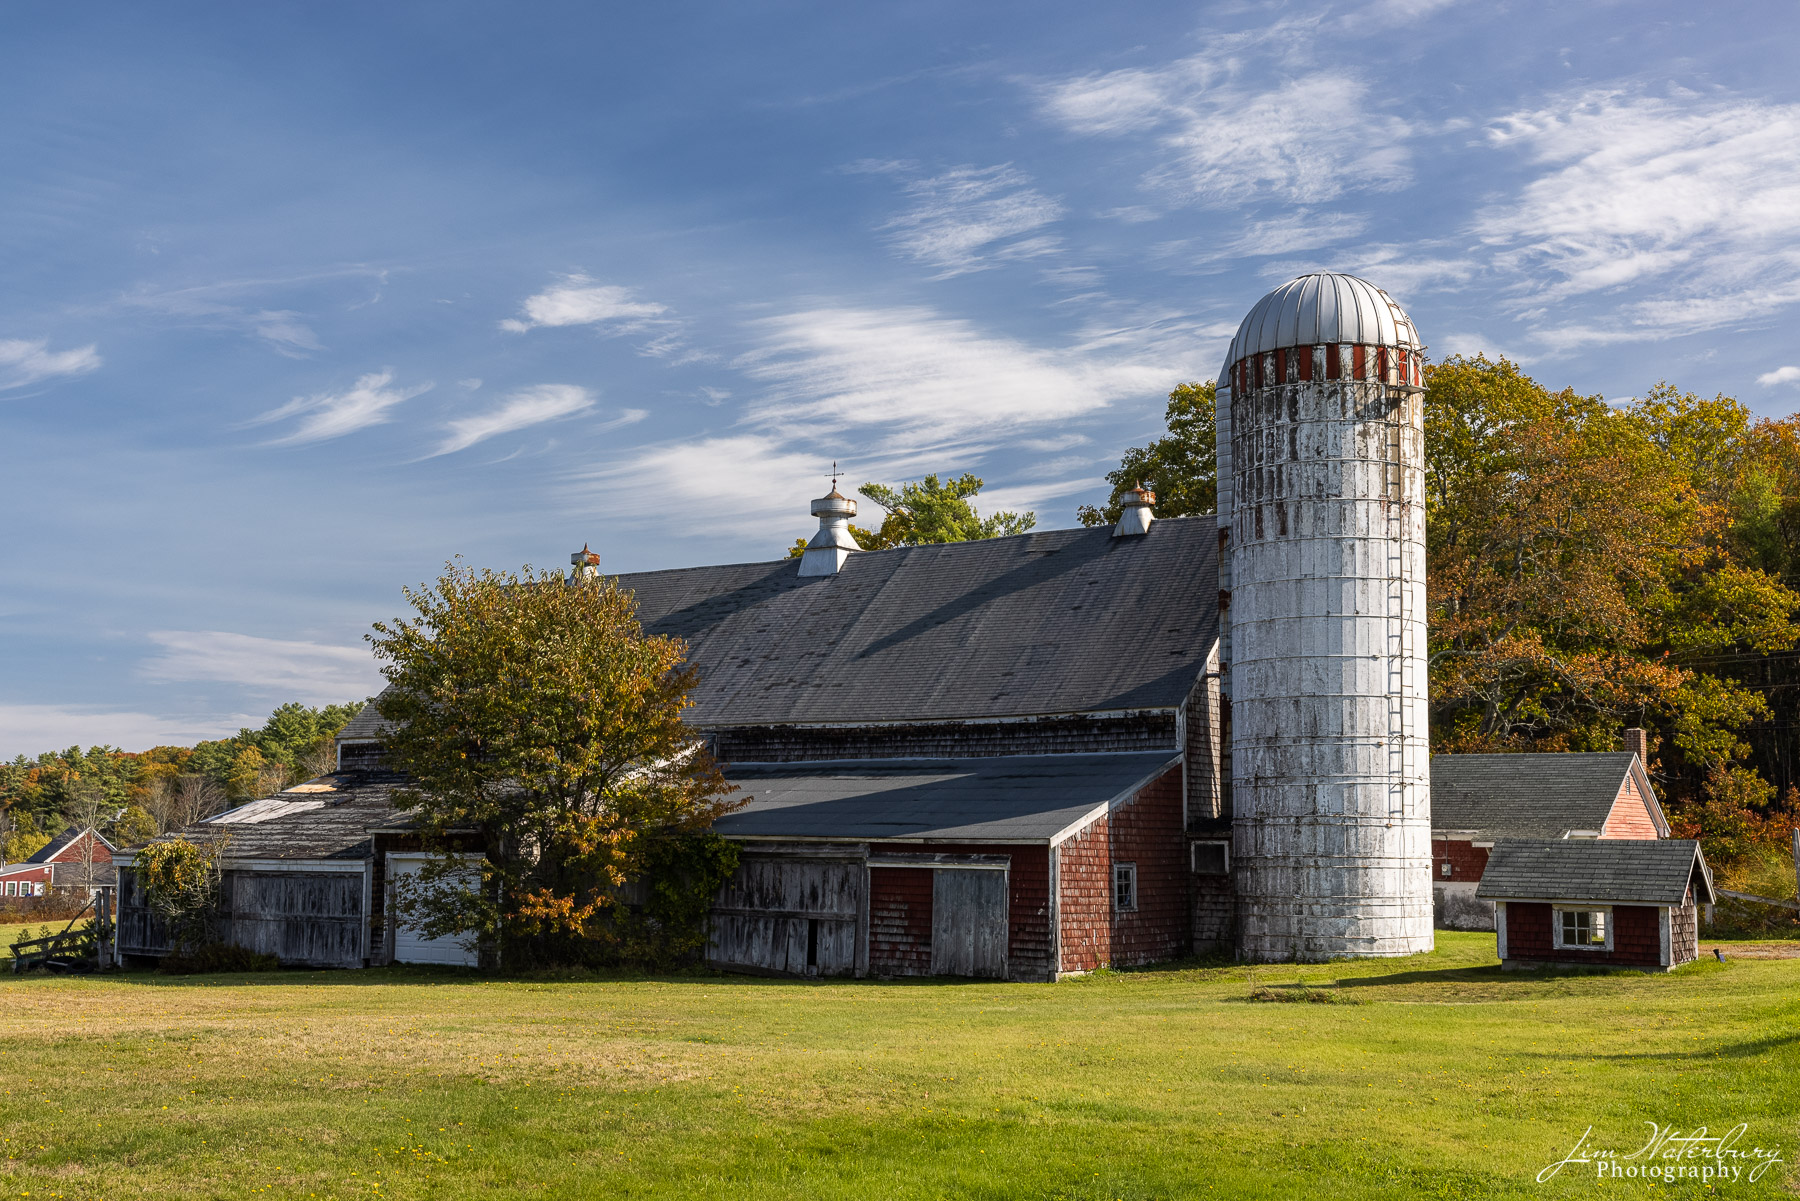 Classic Maine barn and silo on the country roads outside of Cushing, Maine